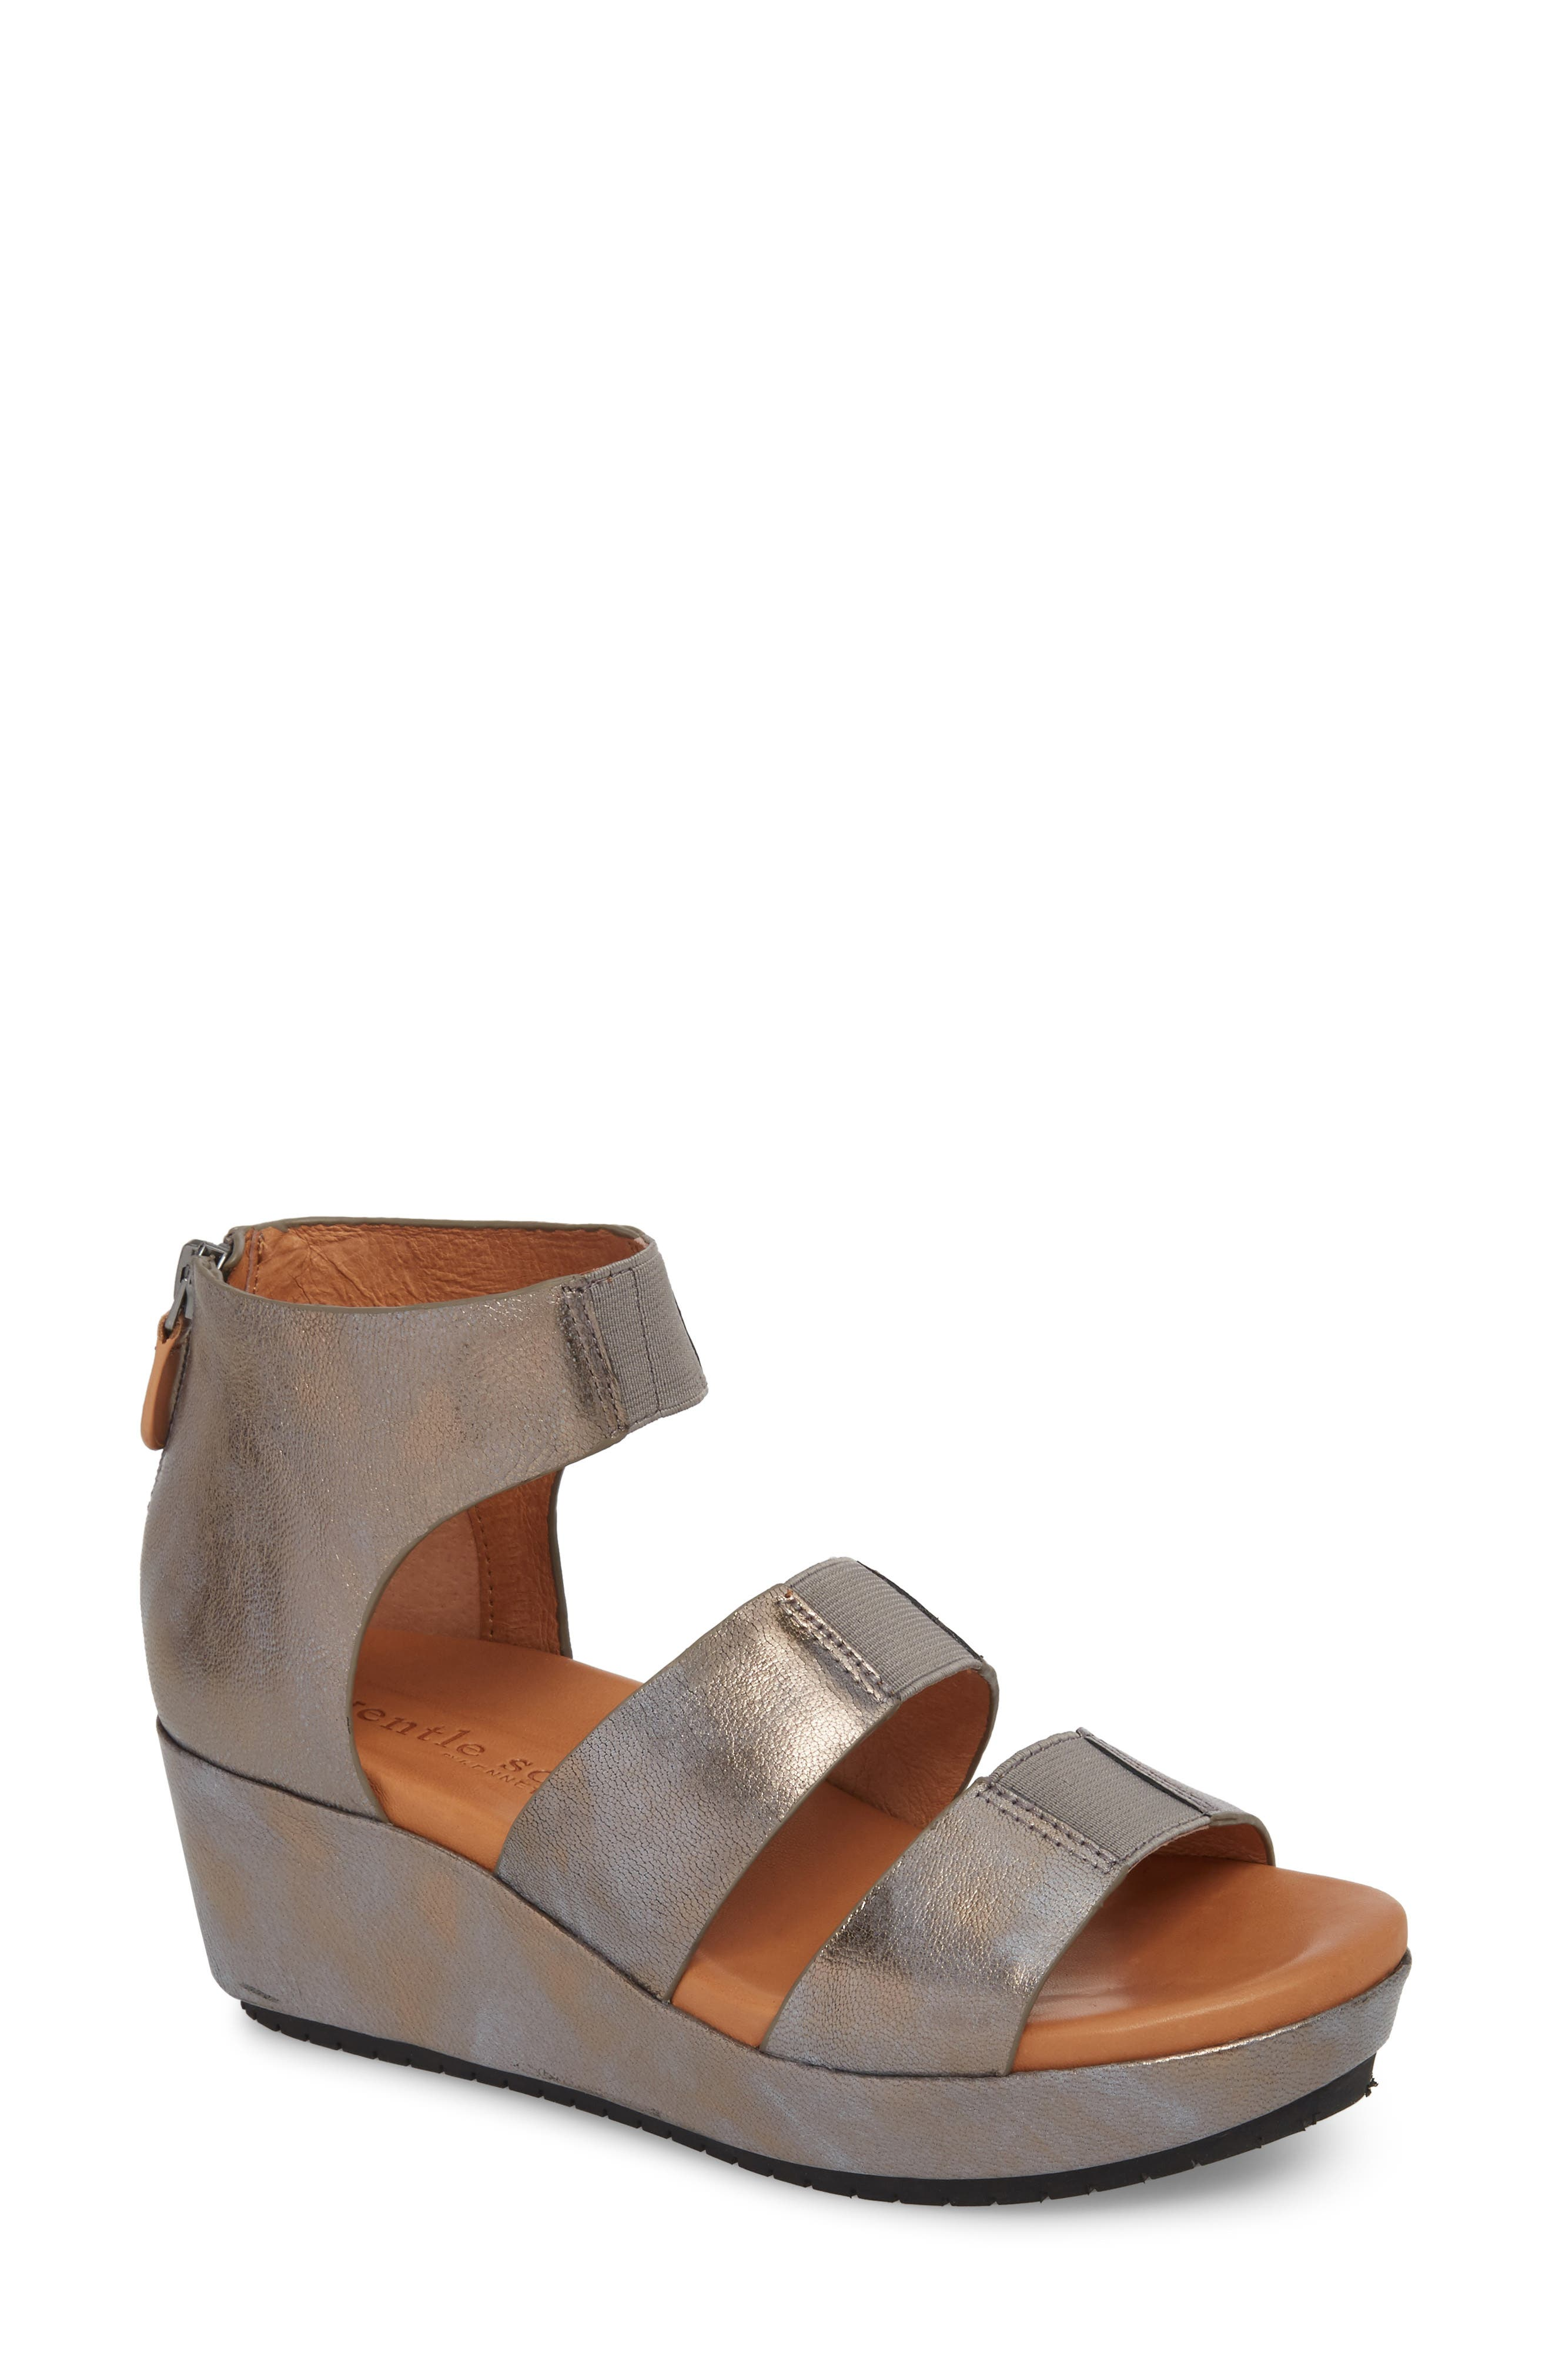 GENTLE SOULS BY KENNETH COLE Milena Wedge Sandal, Main, color, PEWTER METALLIC LEATHER